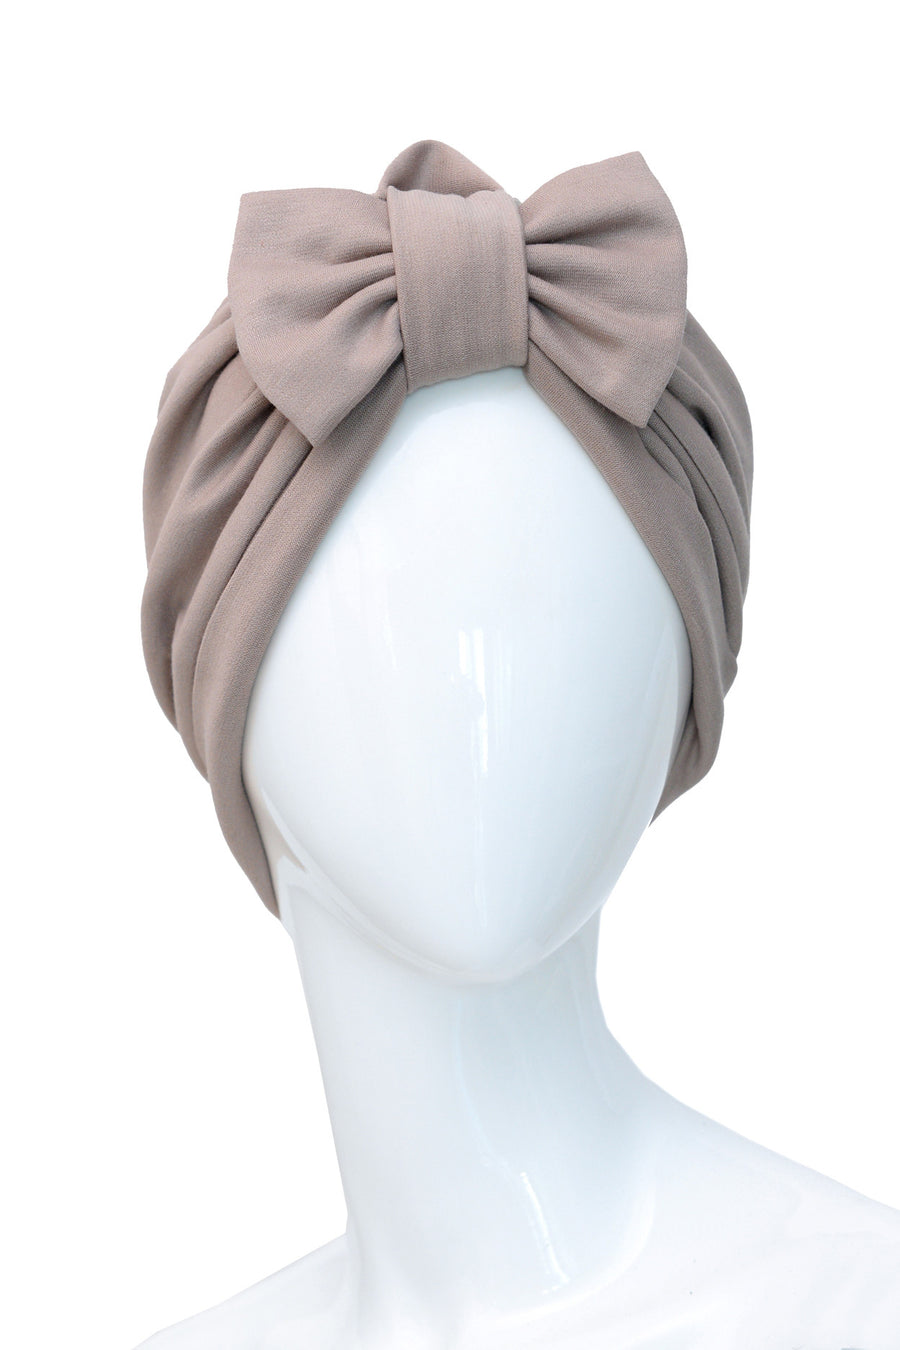 QUAI DE LA RAPEE grey turban for women